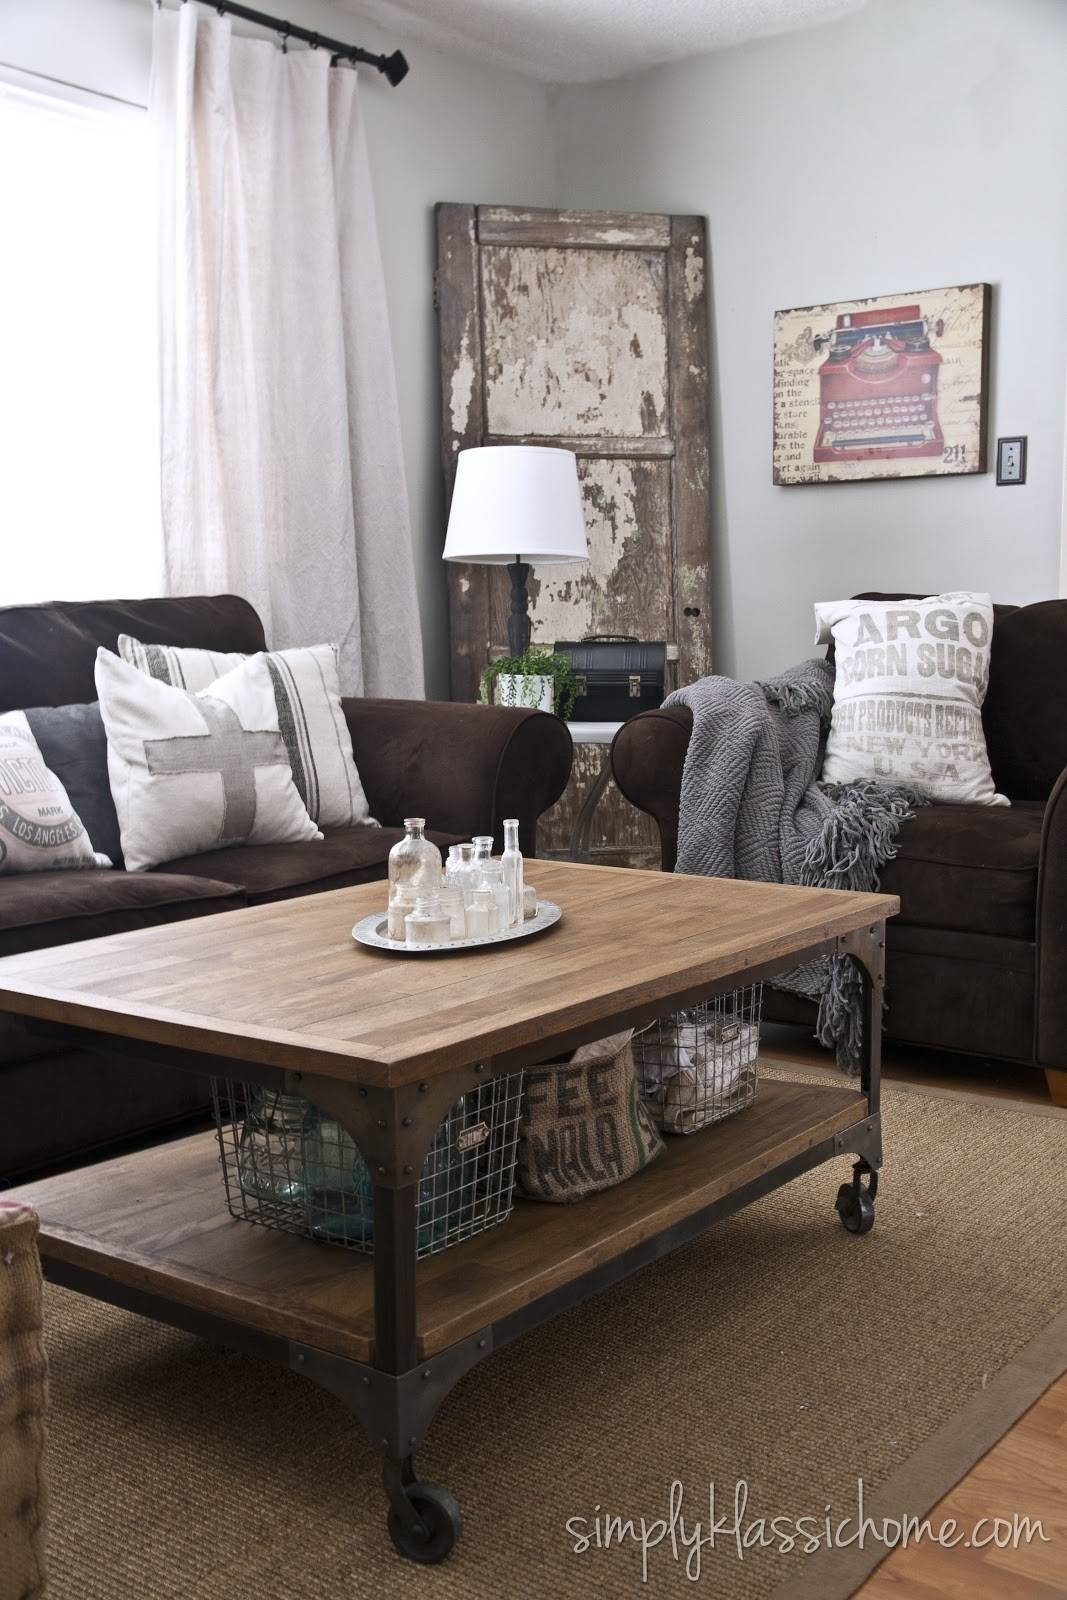 30 Best Accent Colors For My Brown Couch Images On Pinterest Regarding Living Room With Brown Sofas (Photo 13 of 15)